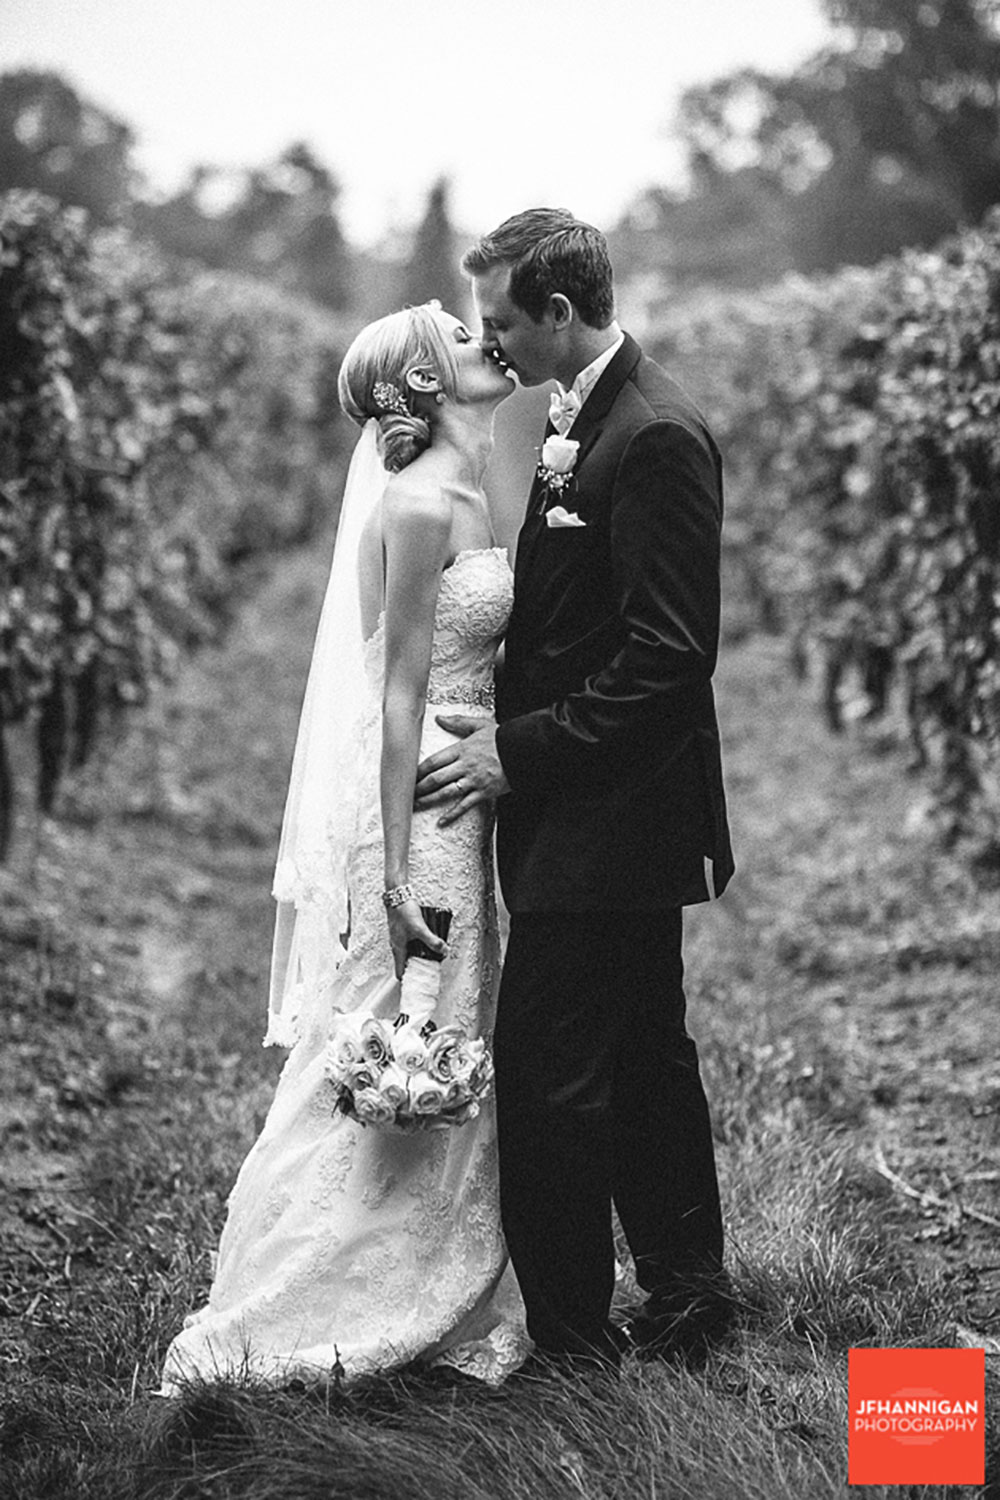 Pillar-and-Post-Vintage-Hotels-Wedding-Vineyard-Bride-photo-by-Joel-Hannigan-Photography-0055.JPG